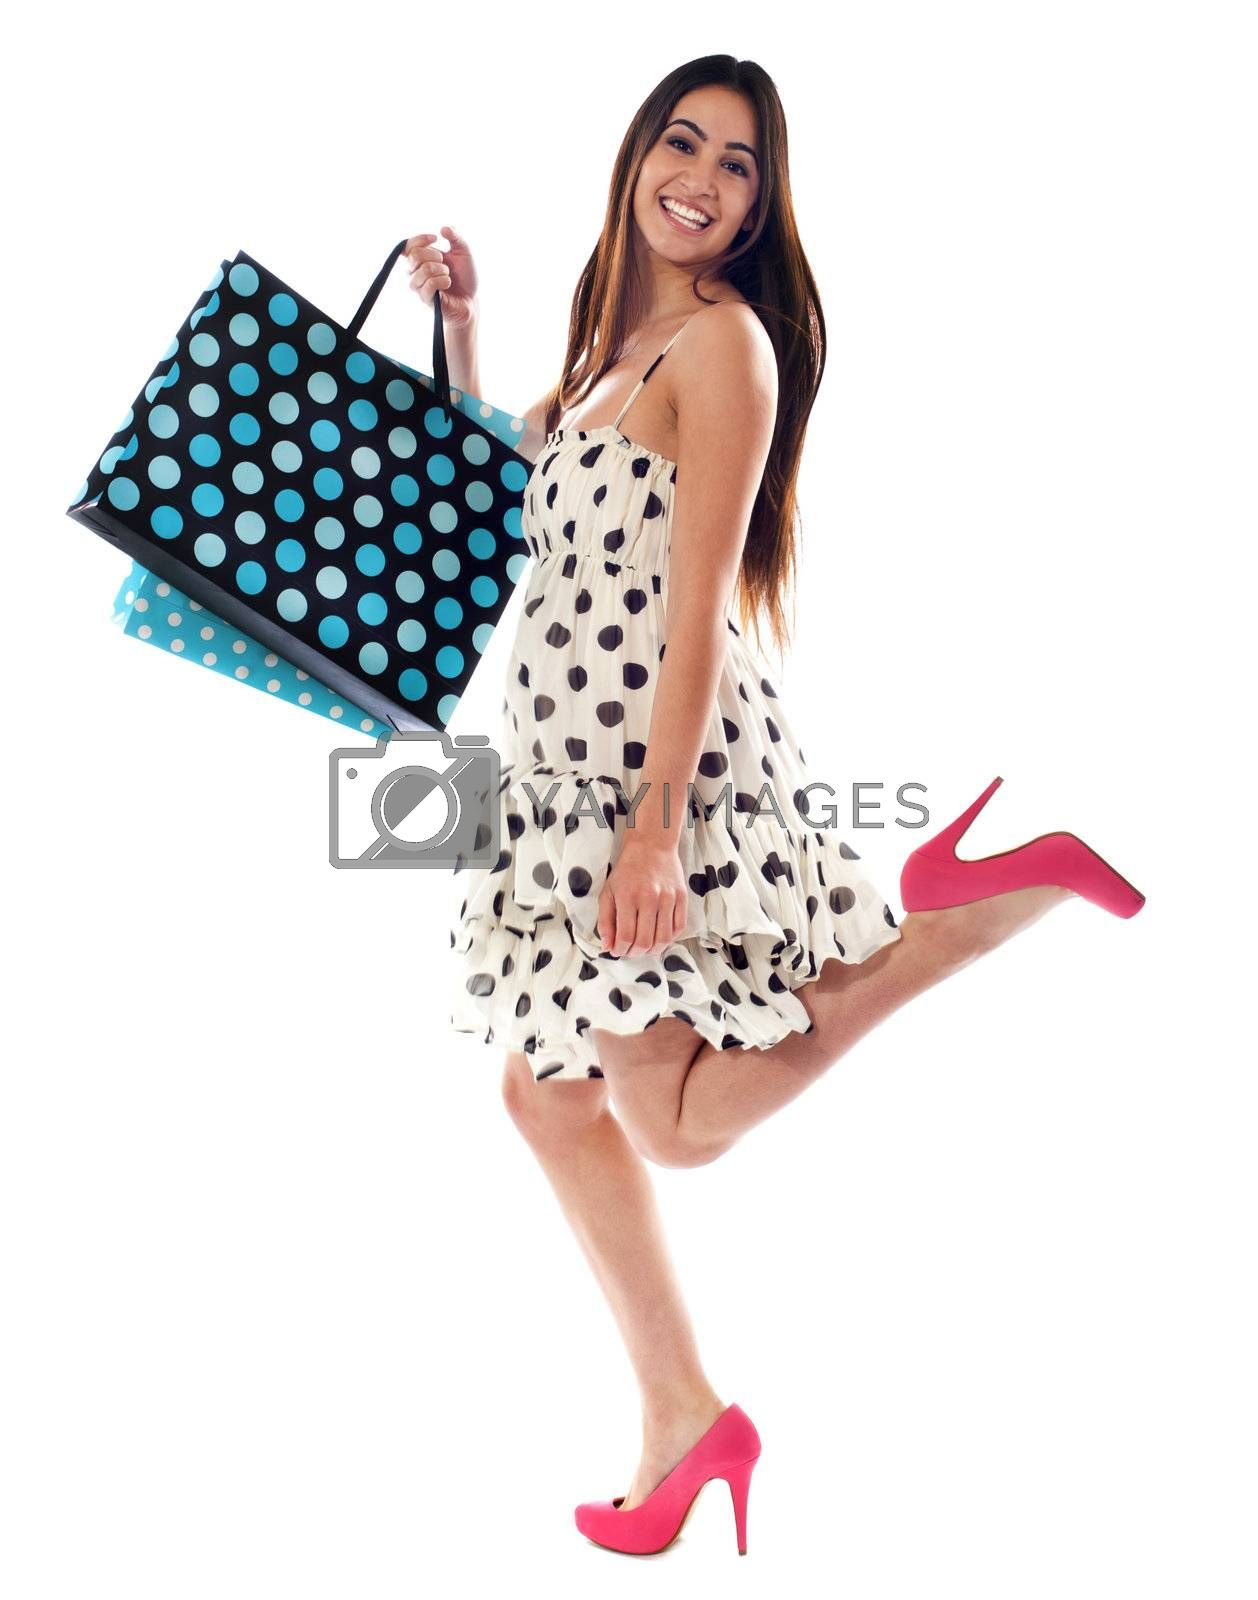 Cute American woman with shopping bags. Smiling and having fun